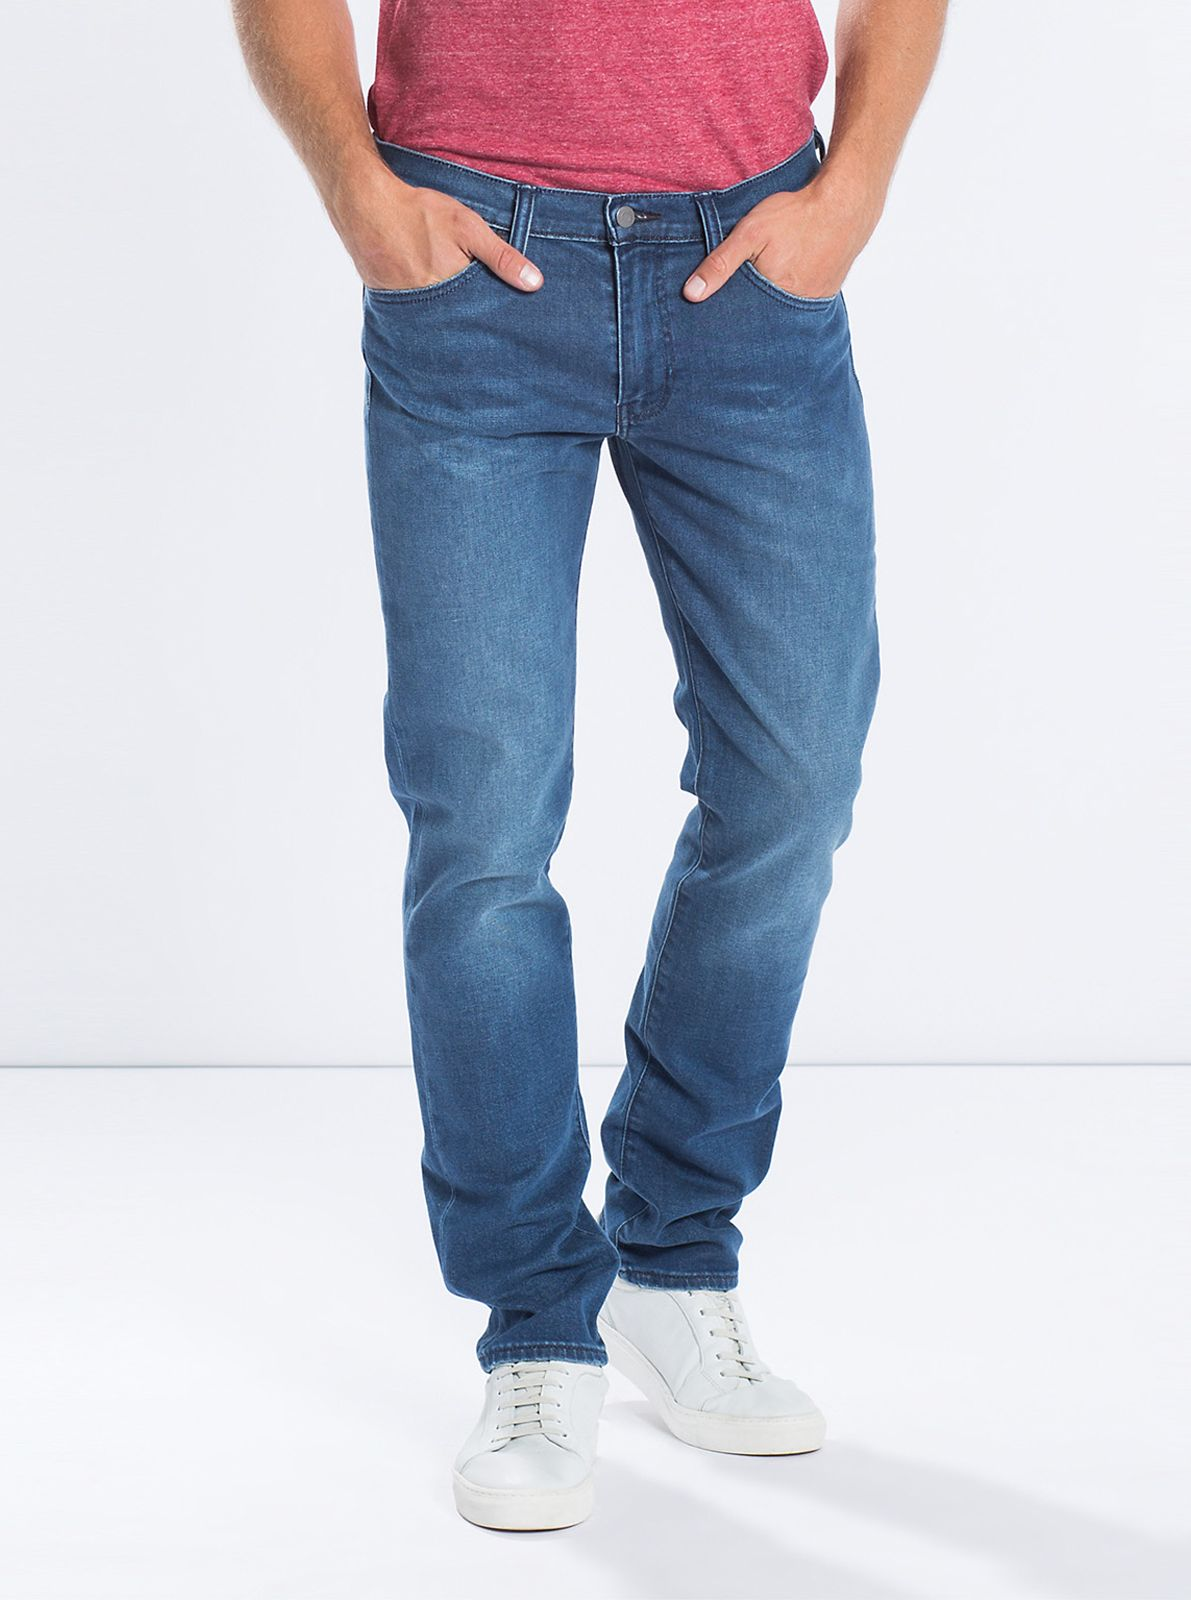 52aa9cf7d91 Blue Denim · Latest Fashion Clothes · I know you want this! Levis 511 Slim  Fit In Sooty Ember http